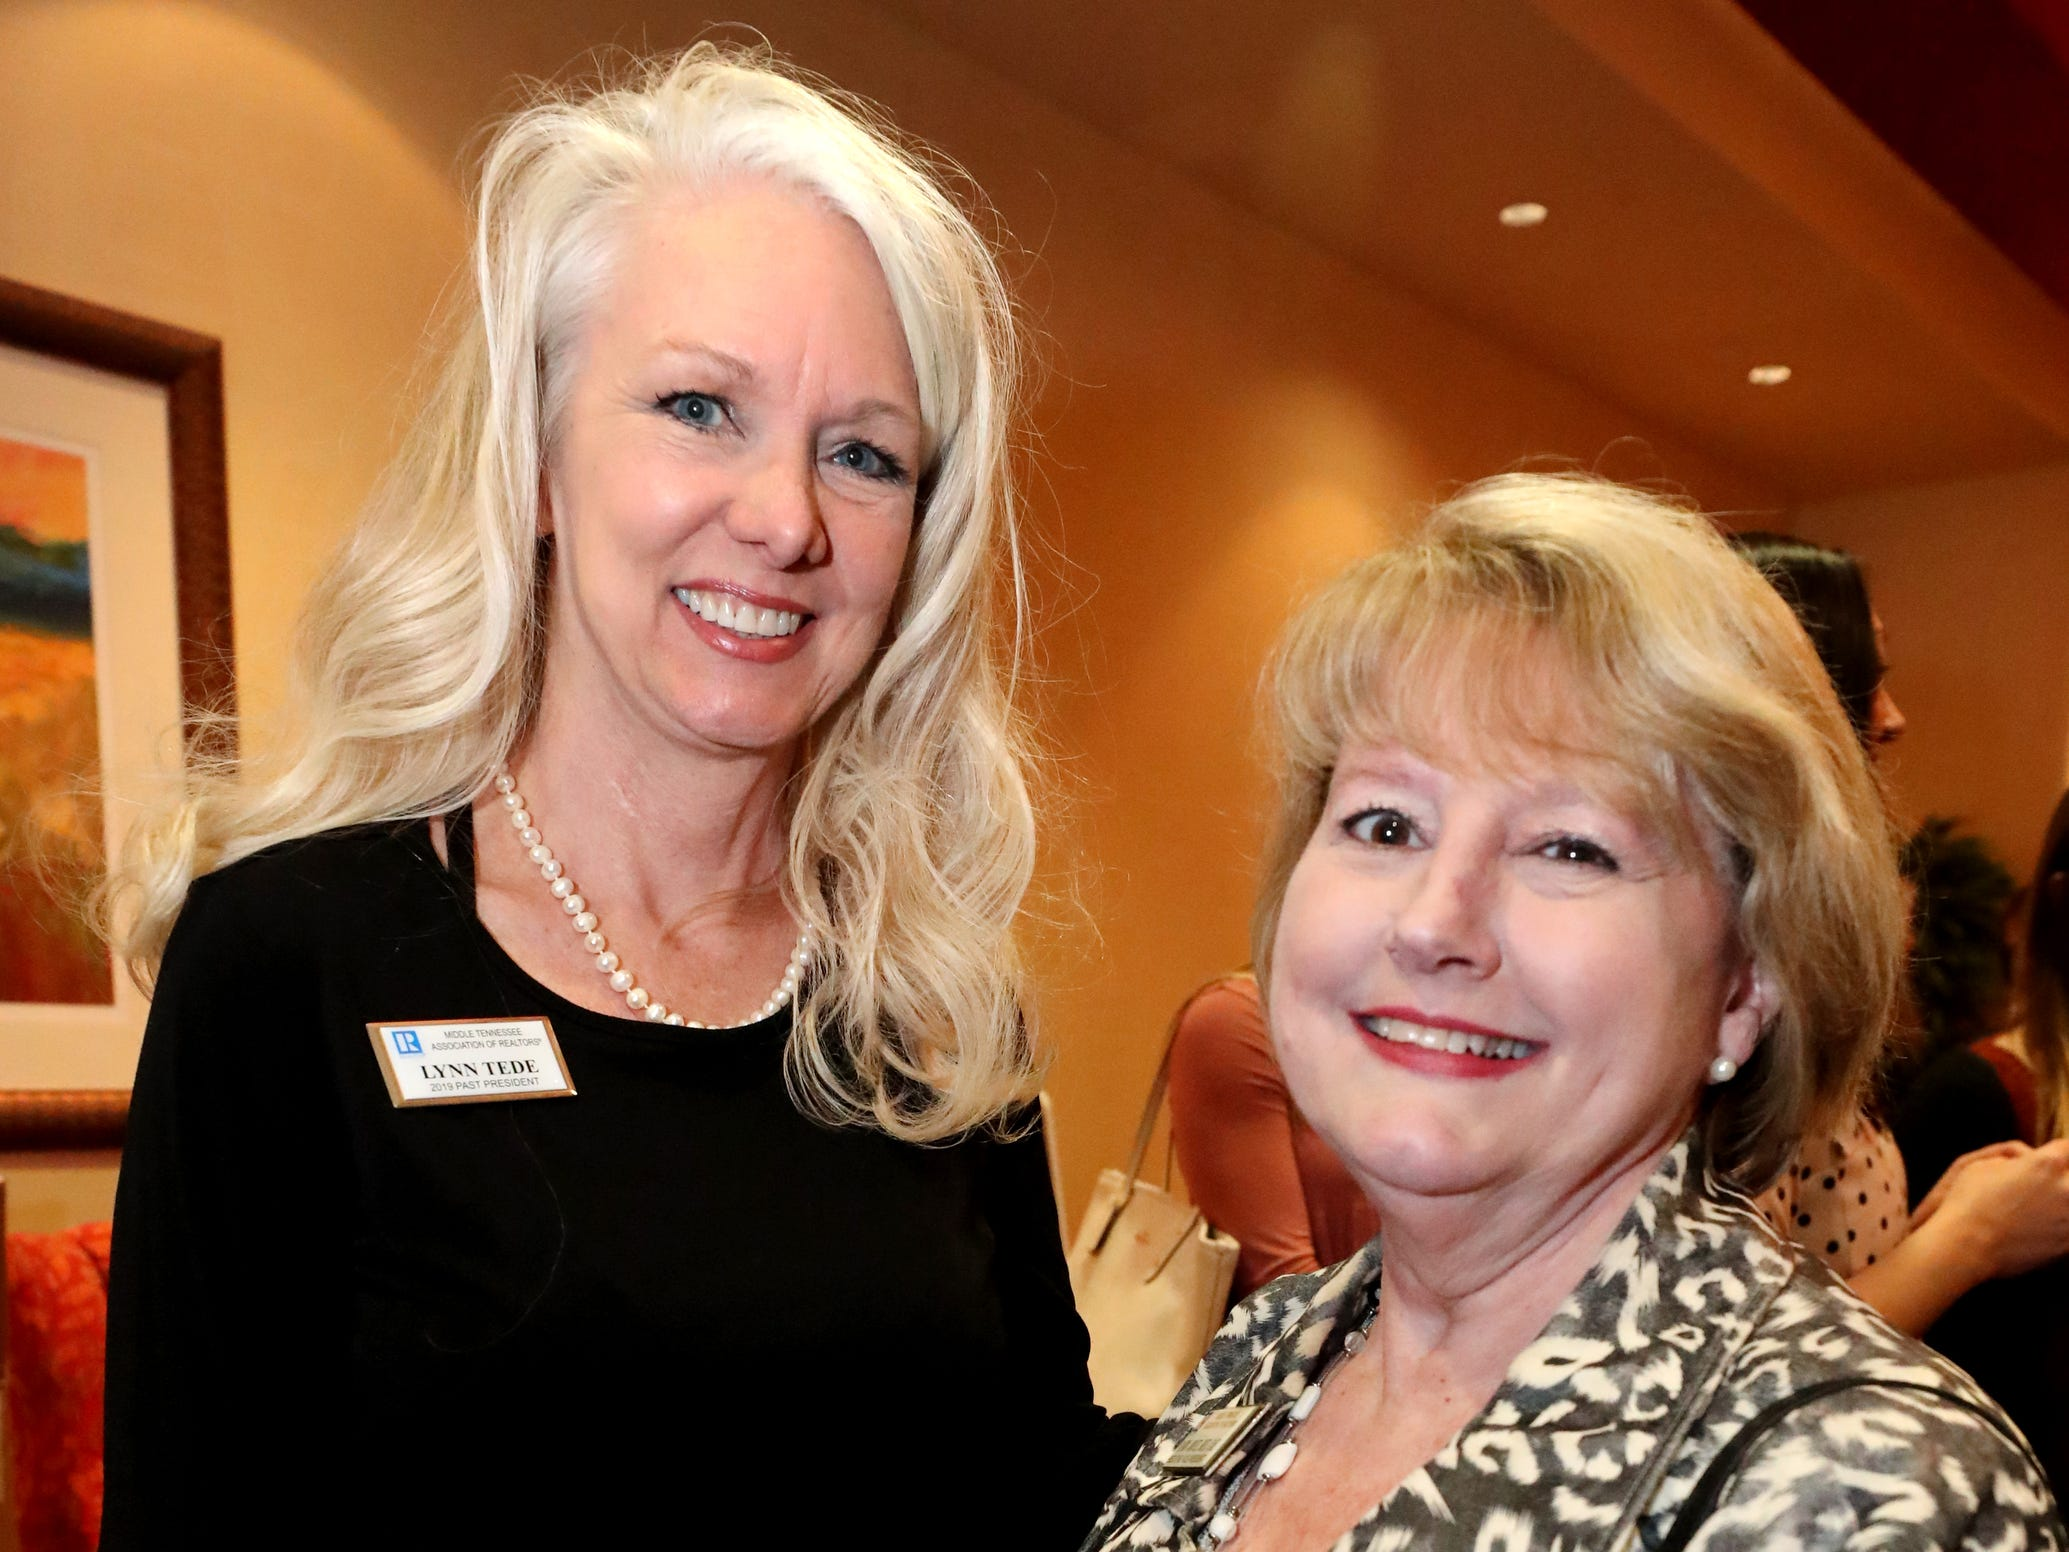 Lynn Tede, left, and Candy Joyce, right, at Murfreesboro Magazine's 2019 Women in Business Luncheon on Tuesday, March 12, 2019, at the Embassy Suites Murfreesboro.